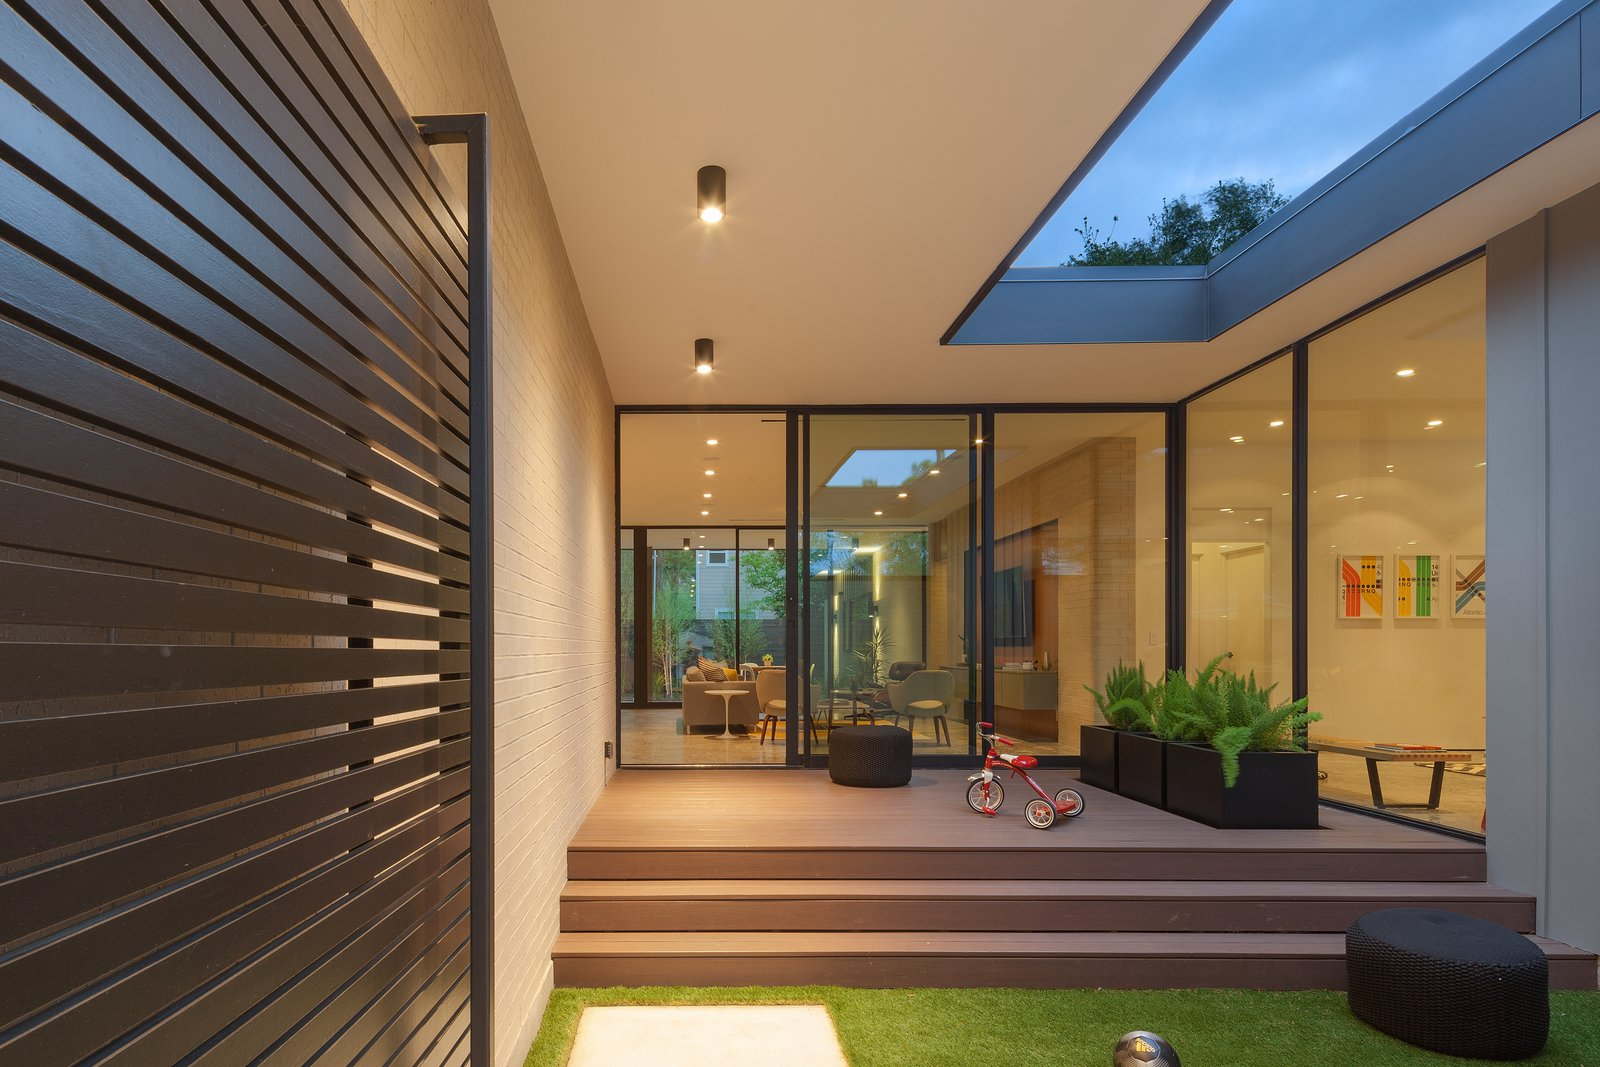 Outdoor, Grass, Wood Patio, Porch, Deck, Pavers Patio, Porch, Deck, Concrete Patio, Porch, Deck, Front Yard, and Walkways Entry Courtyard  Pavilion Haus by studioMET architects